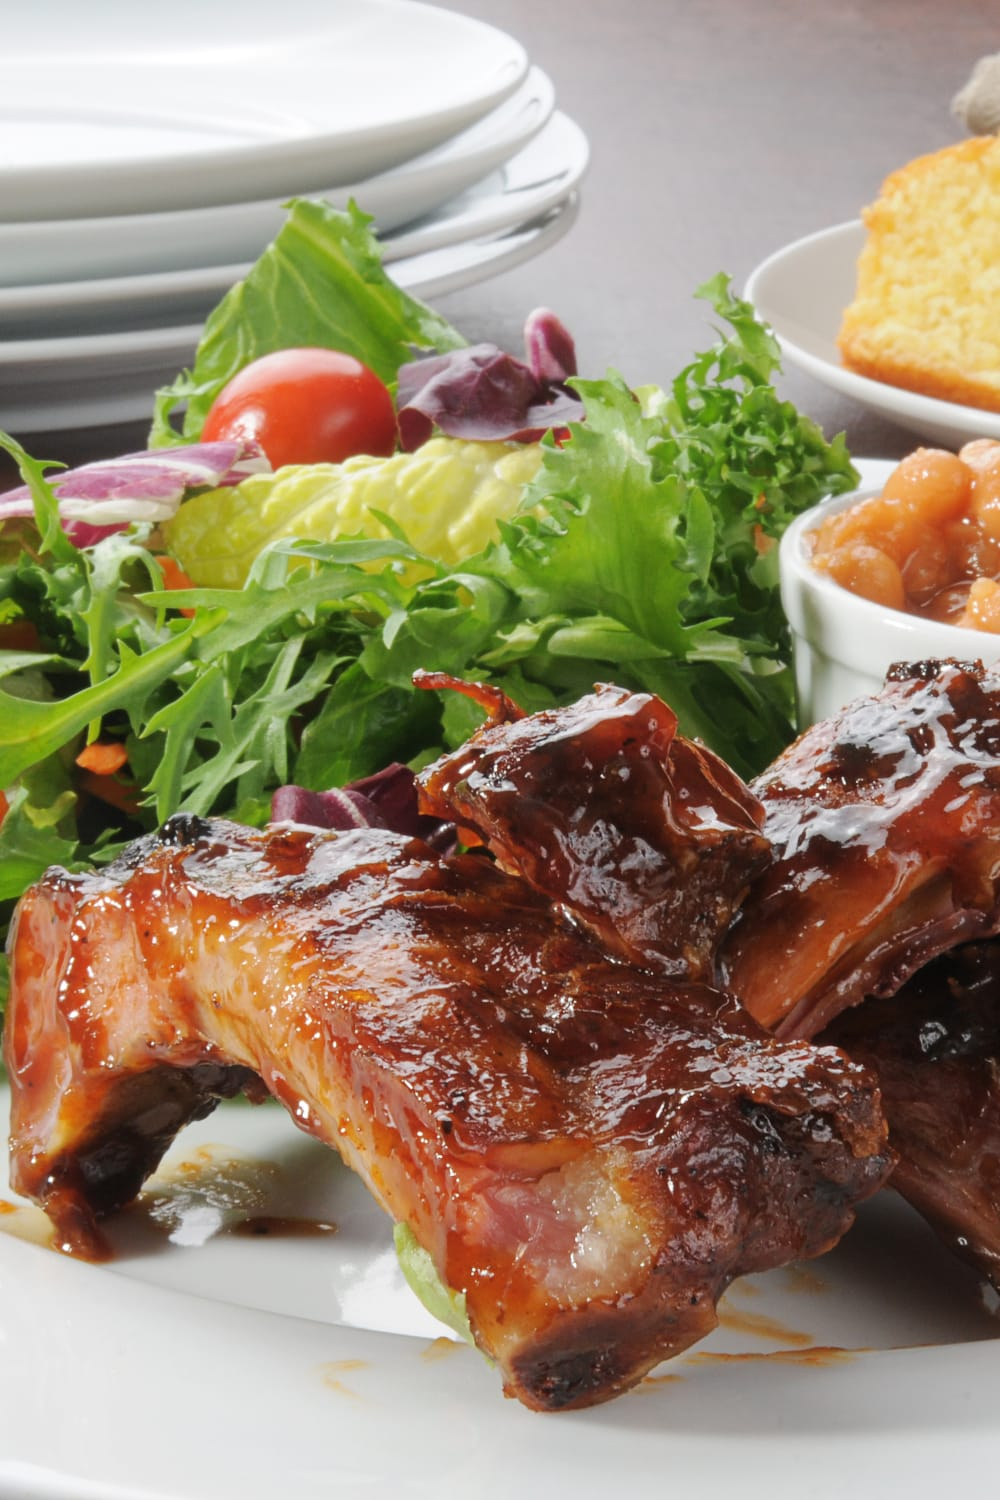 Oven baked bbq ribs served with salad, baked beans, and cornbread. Carved BBQ ribs are slathered in a rich BBQ sauce.